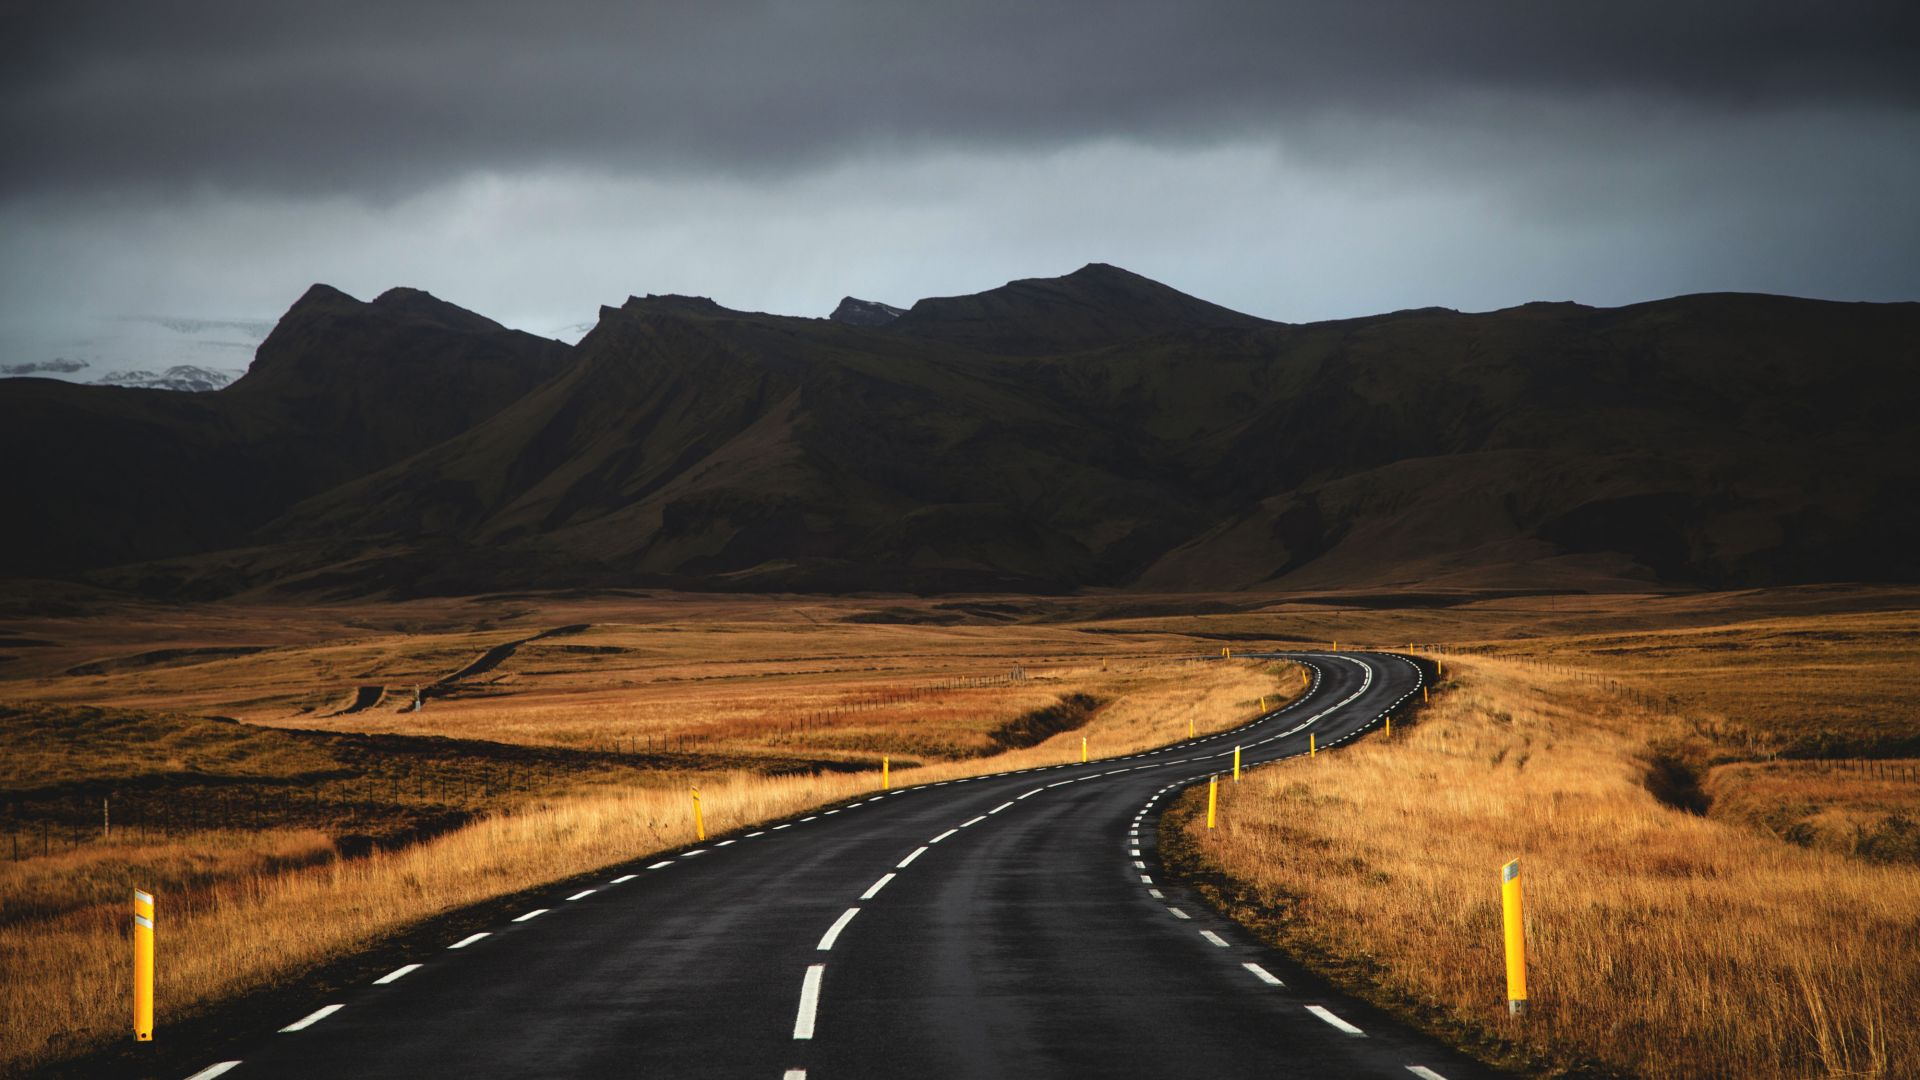 Исландия, 4k, 5k, дорога, горы, облака, Iceland, 4k, 5k wallpaper, road, mountains, clouds (horizontal)